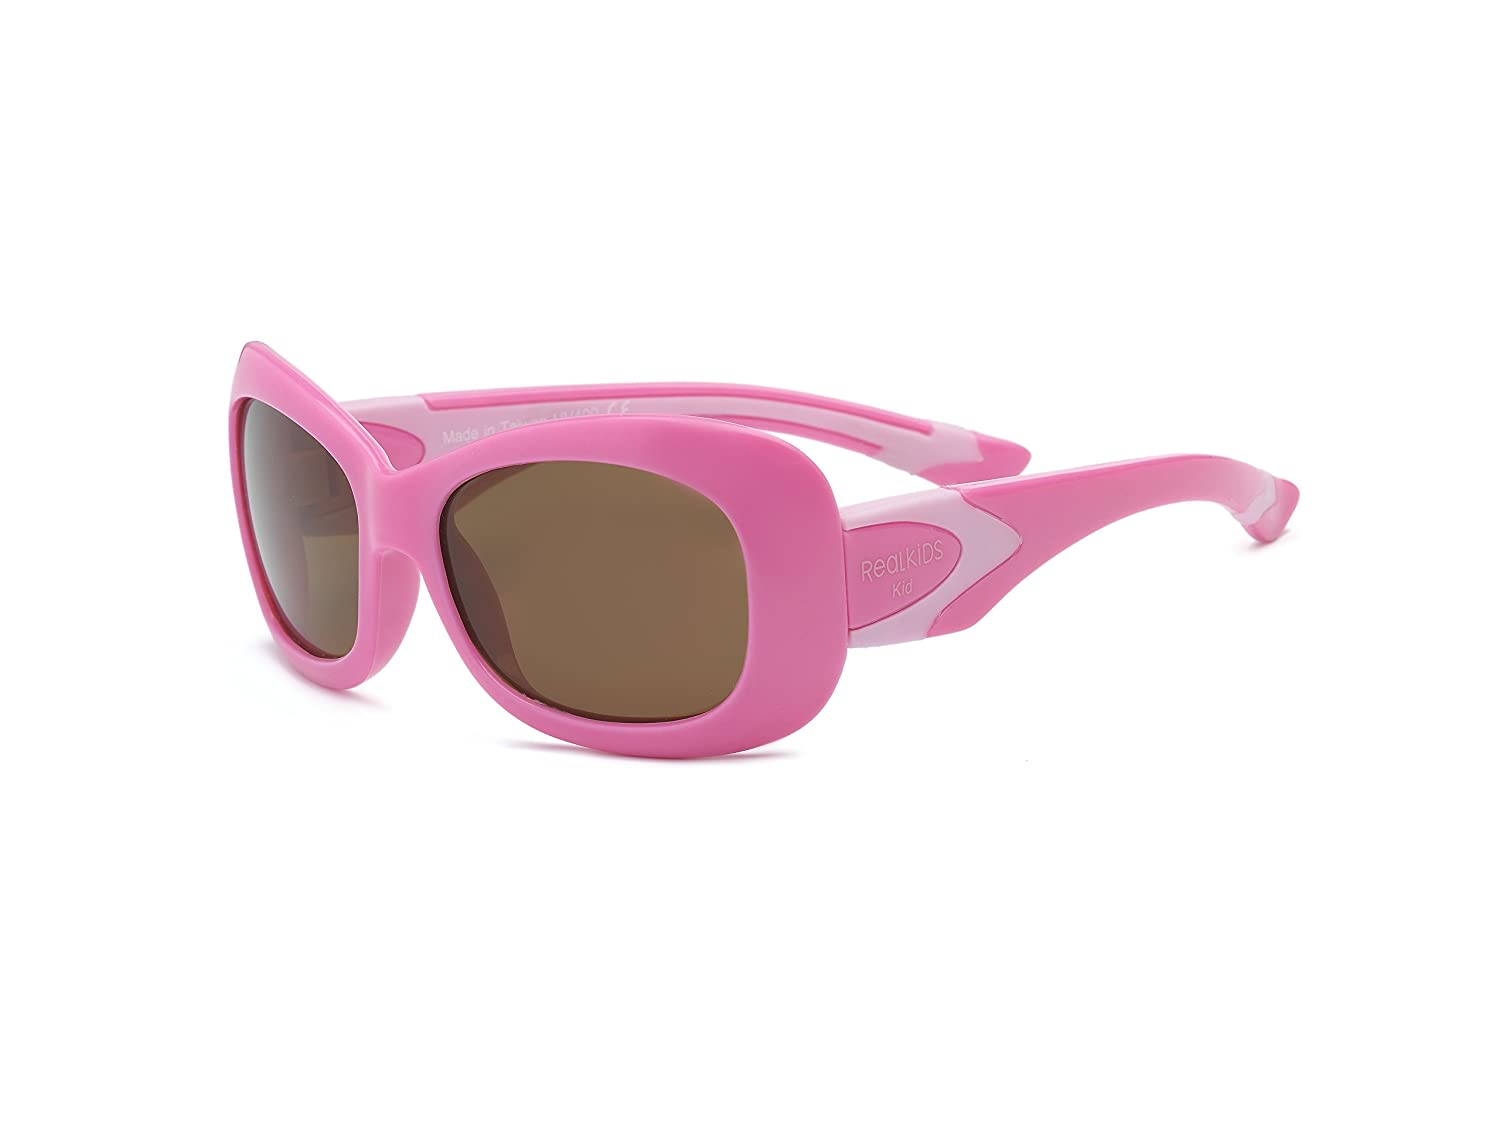 Real Kids Shades Breeze Flex Fit con policarbonato/occhiali da sole polarizzati rosa pink 7 7BREPKPKP2